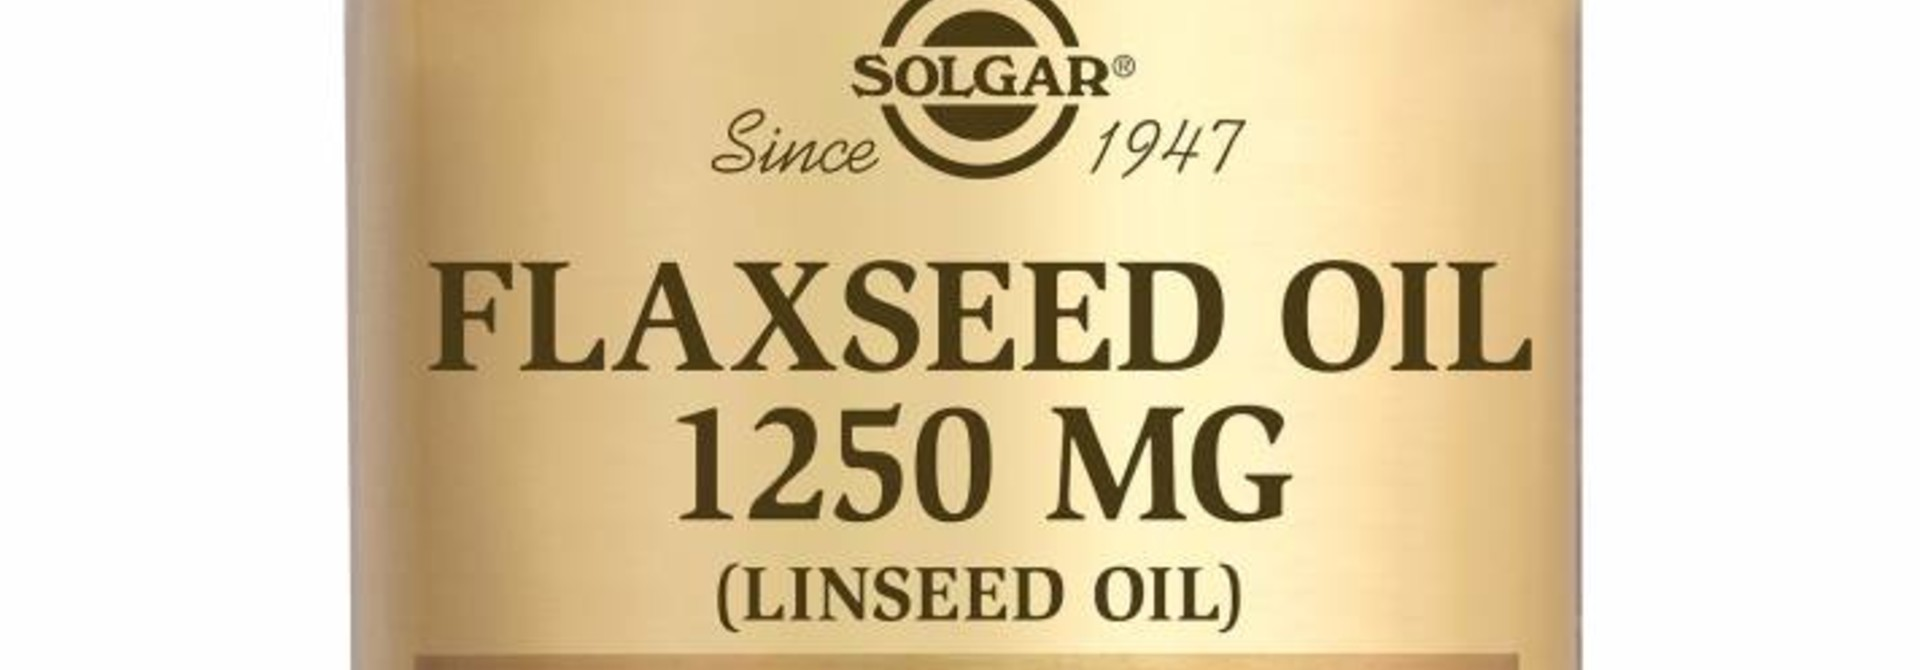 Flaxseed Oil 1250 mg 100 softgels